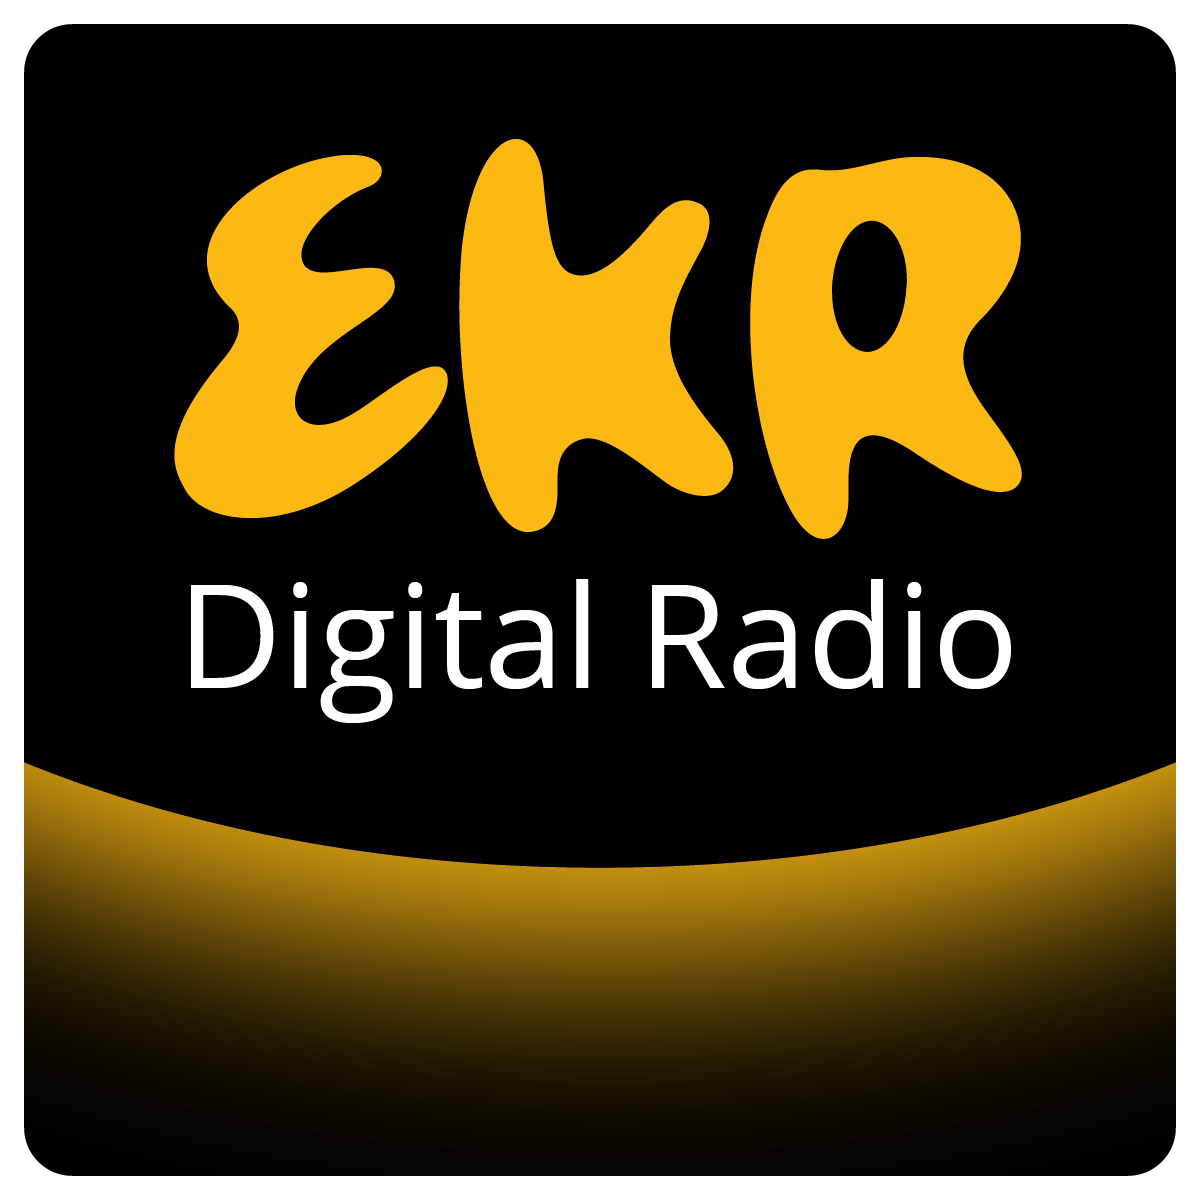 EKR - OLDIES PARADISE (http://ekrdigital.com/player/#/classic-gold)